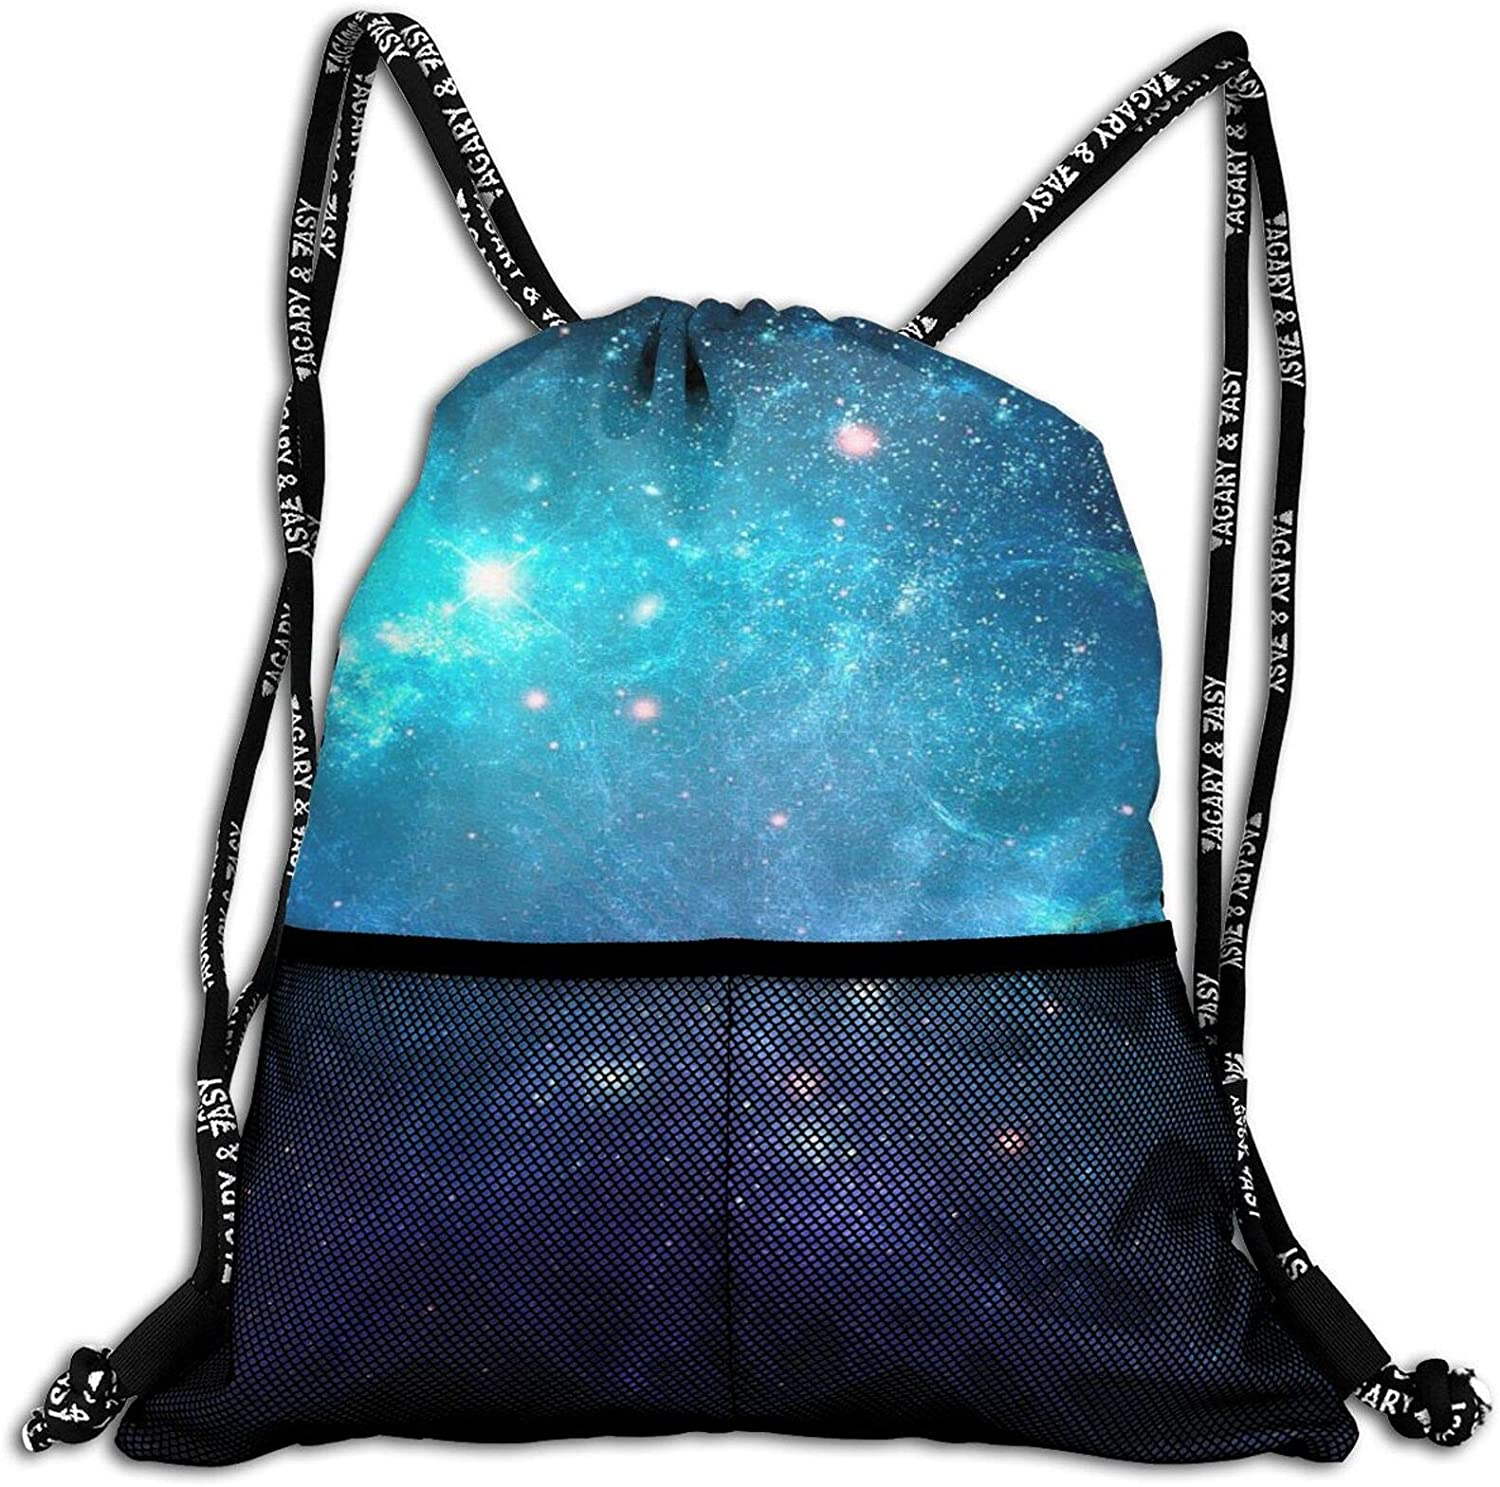 Galaxy Nebula Space Drawstring Gym Backpack String Bags for Students Teenagers Boys Girls, Multifunction Cinch Bag Sackpack for Books Sneakers Clothes Snacks